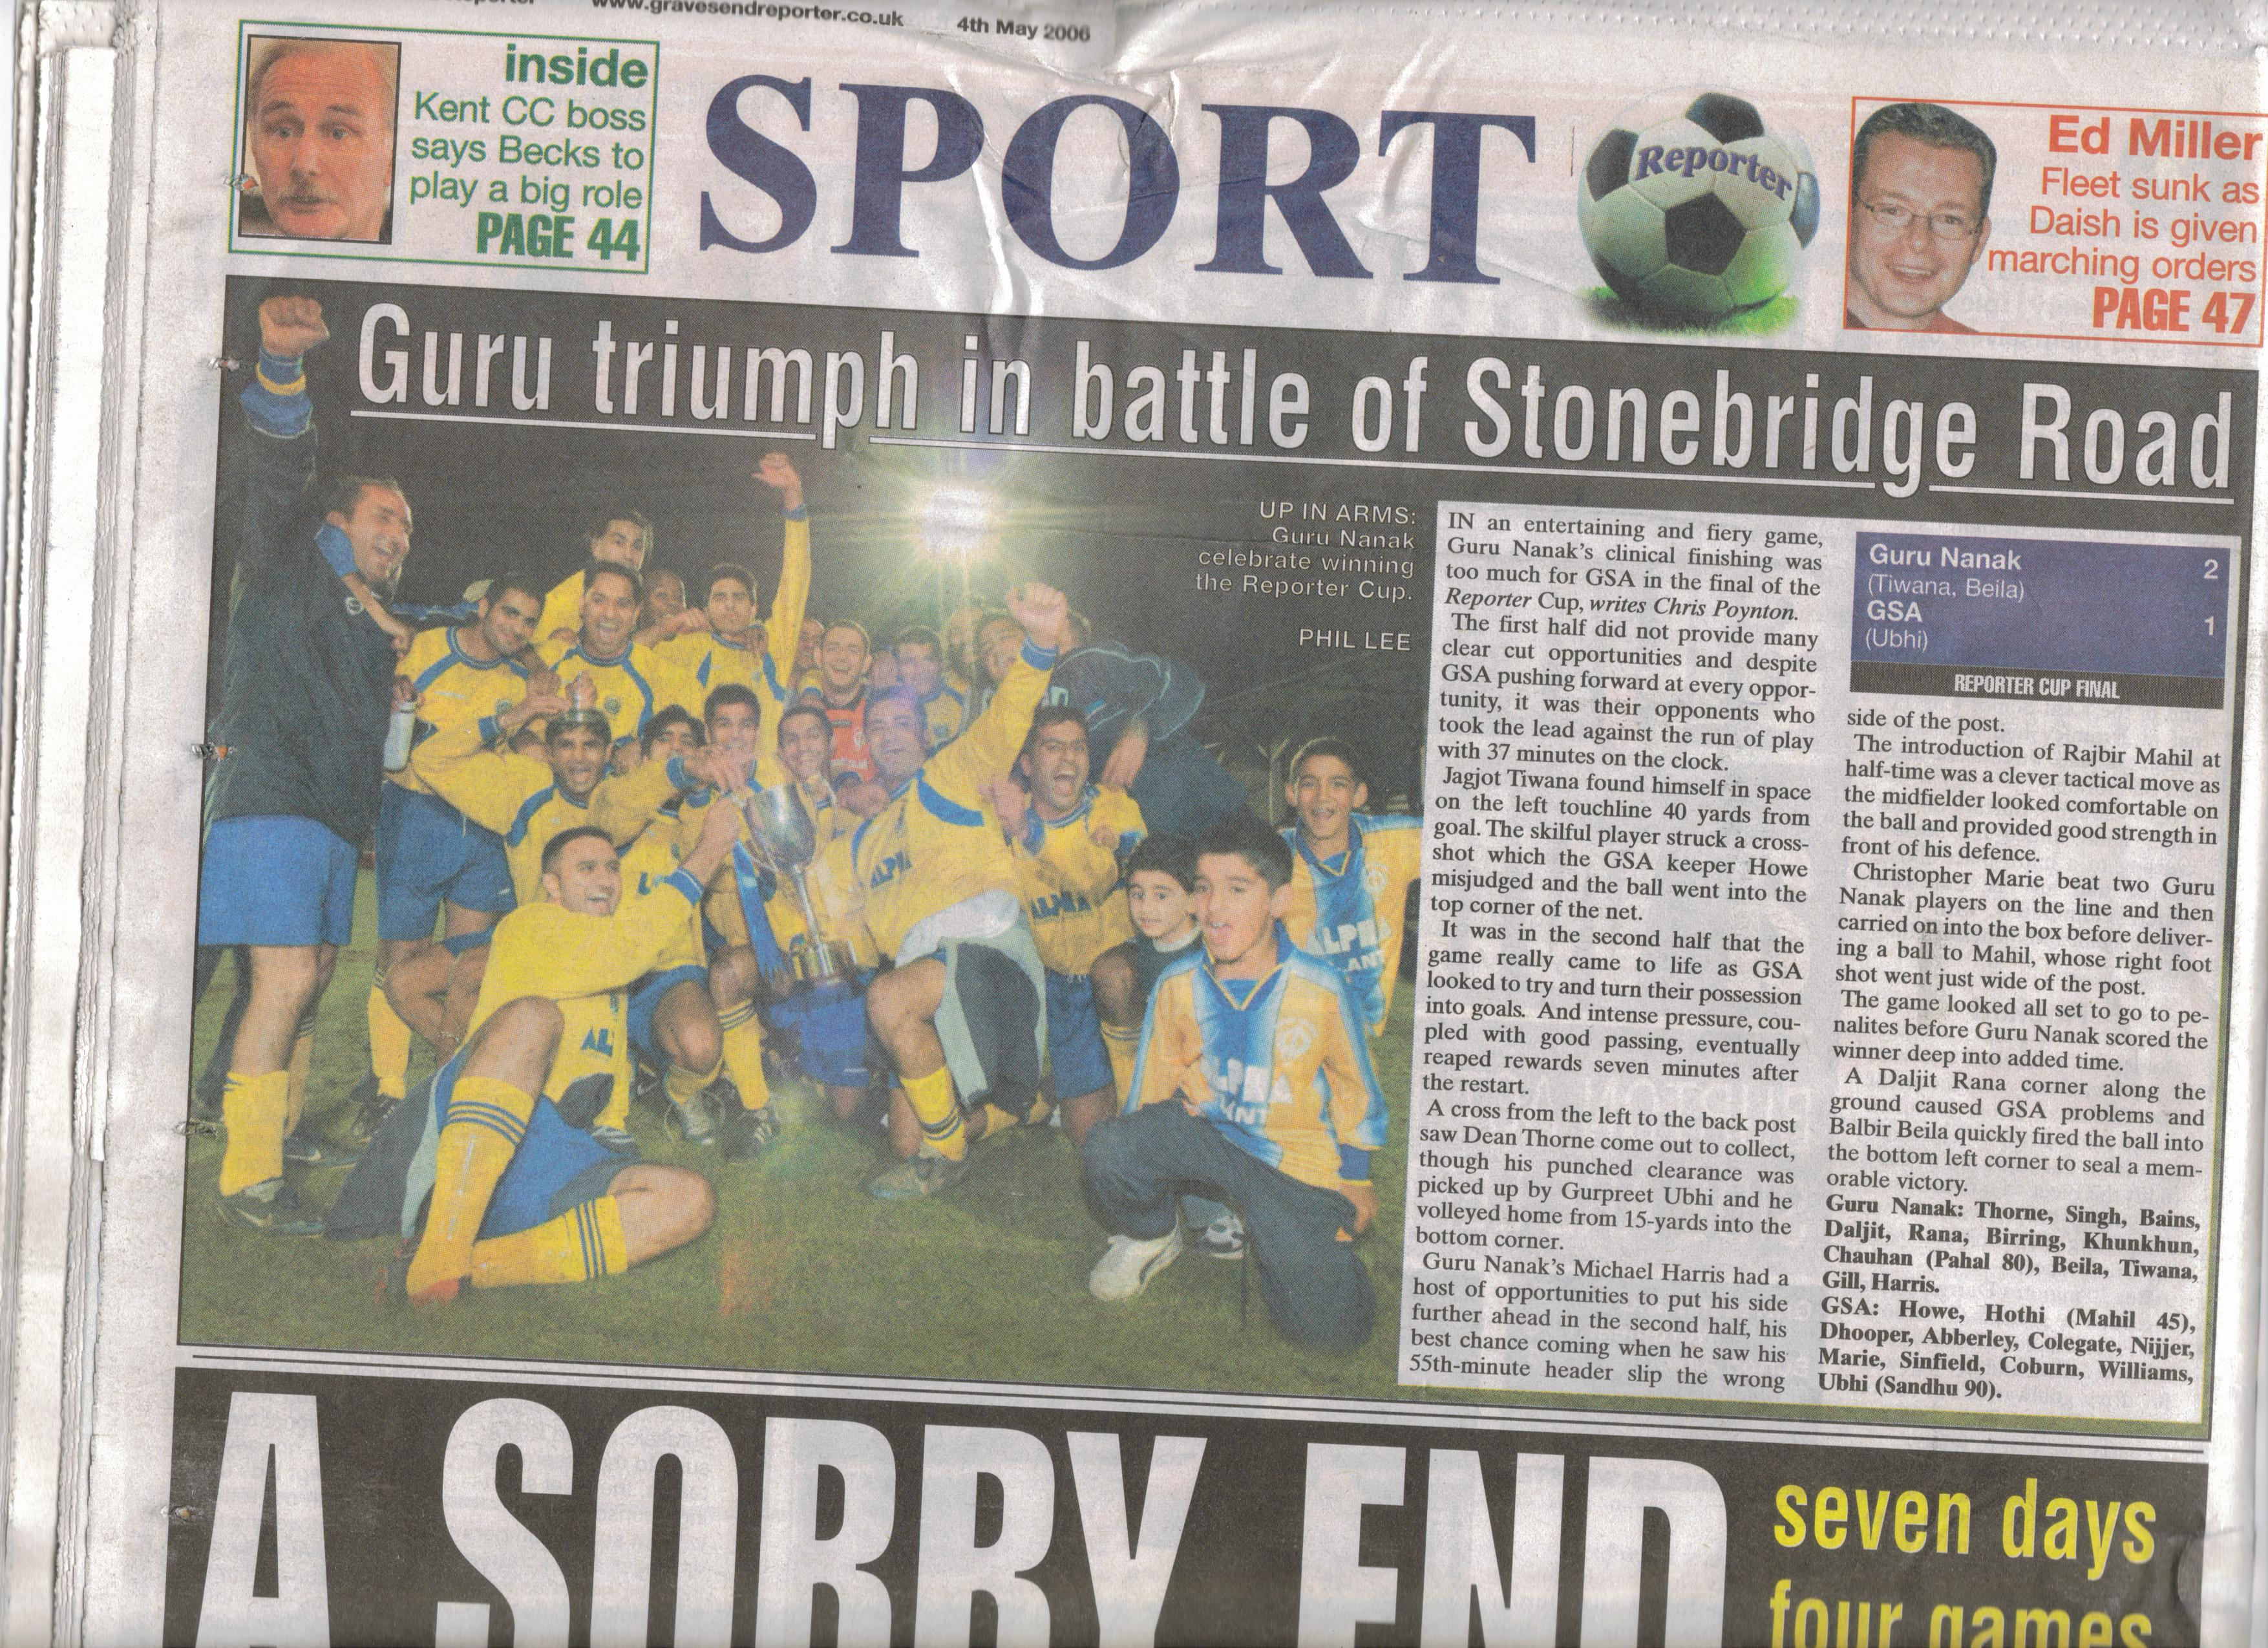 Reporter Cup Champions 2006